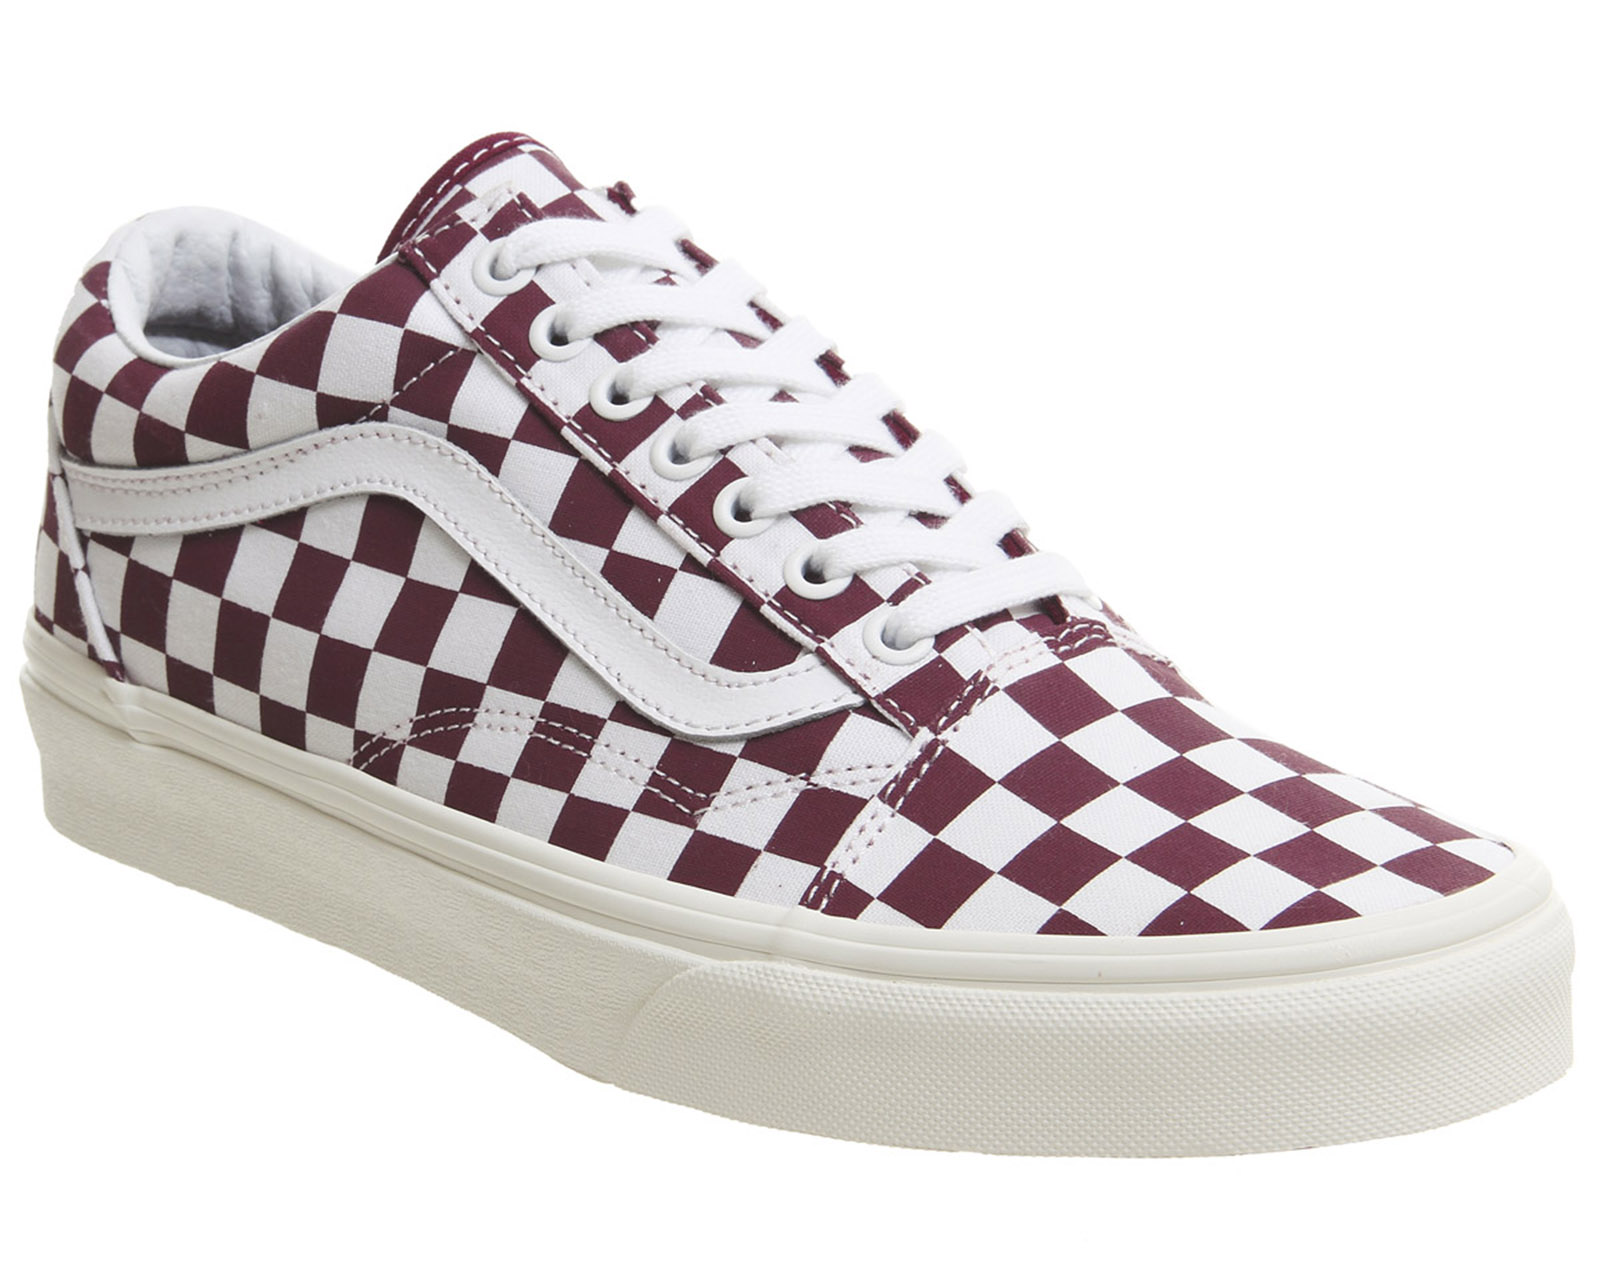 995af6d473a46a Sentinel Mens Vans Burgundy Canvas Lace Up Trainers Size UK 12  Ex-Display